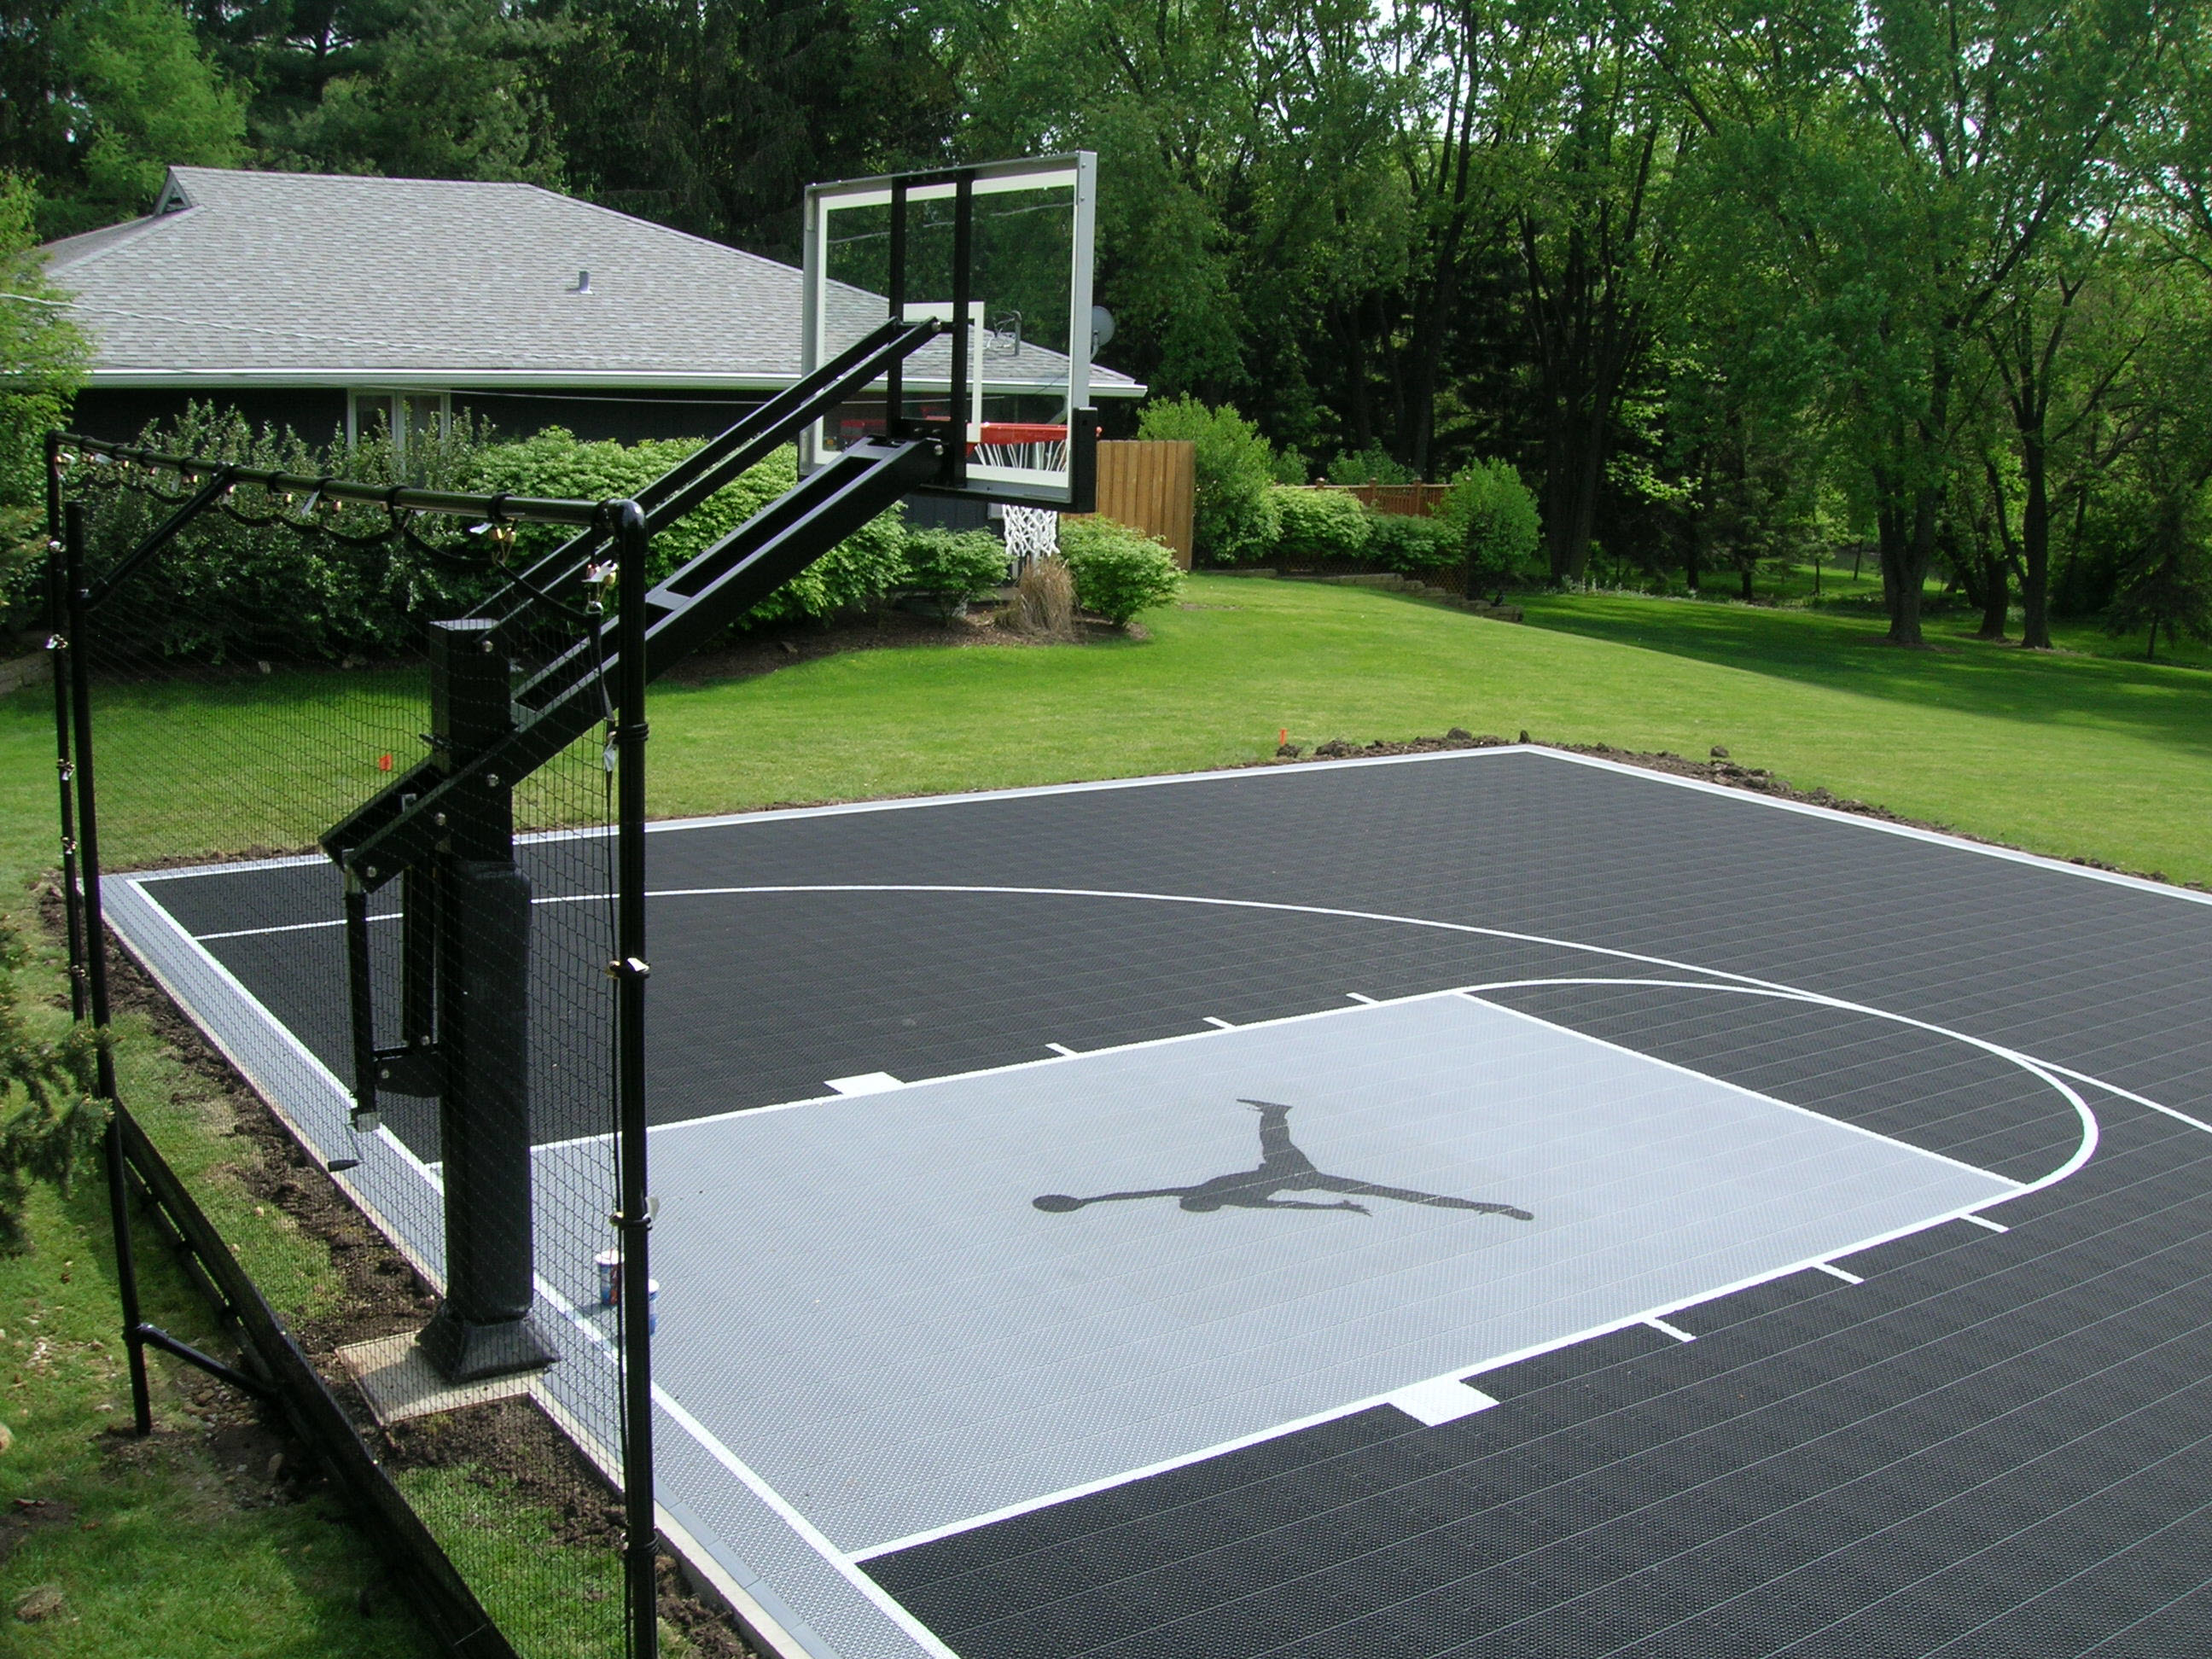 Elegant Air Jordan Outdoor Basketball Court